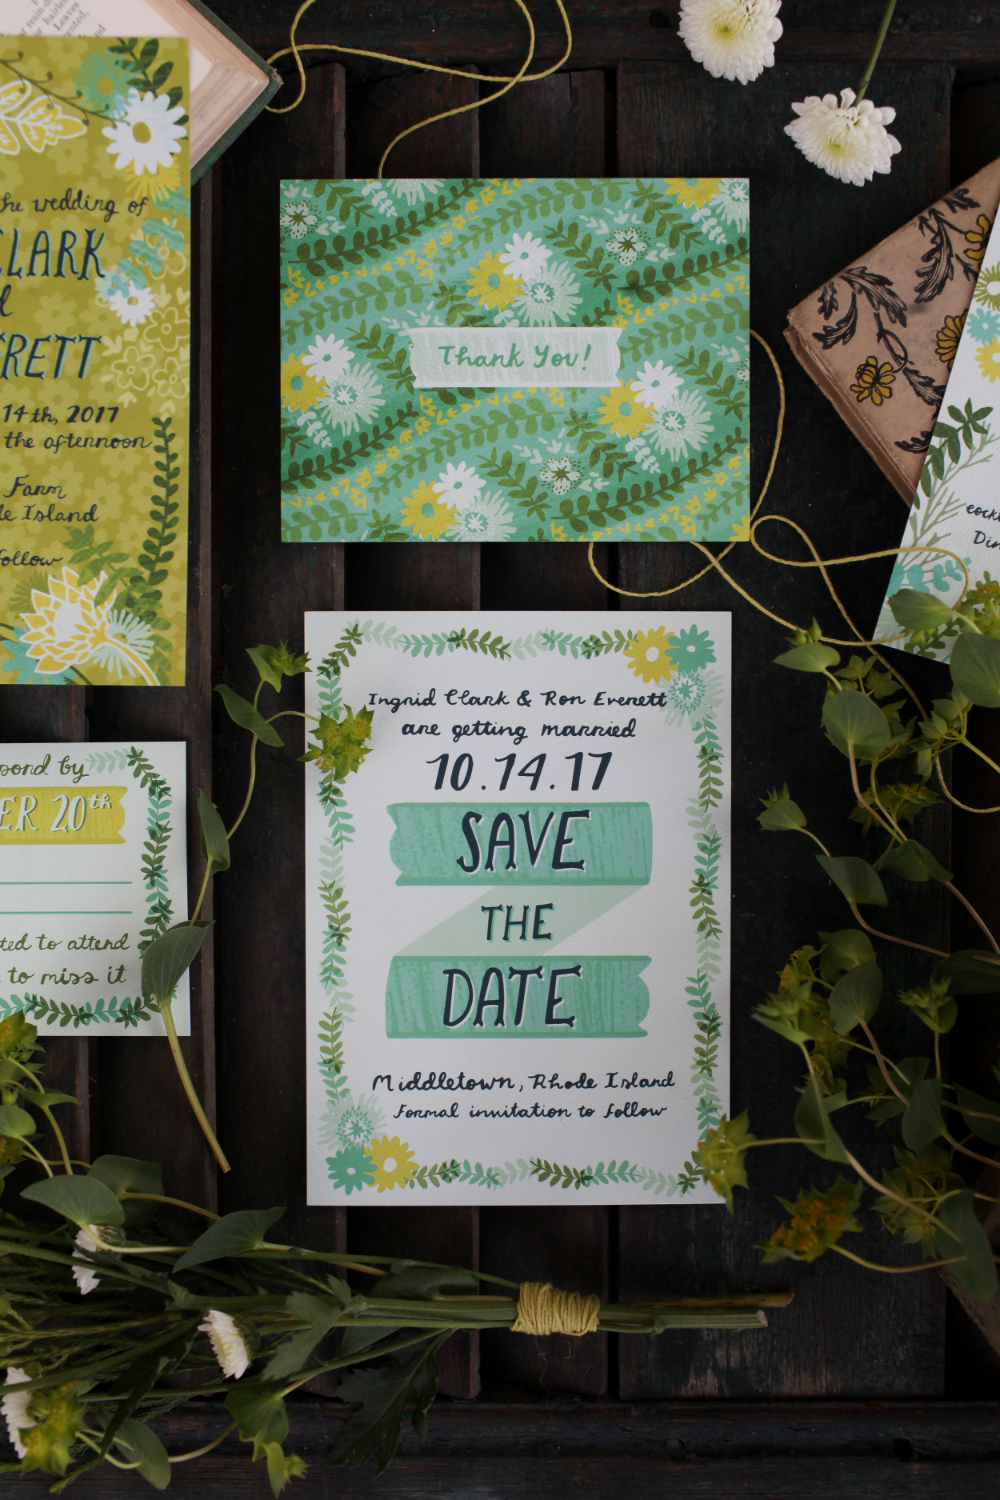 Shop our collections for Invitations, RSVP cards, Save the Dates, and anything else you may need!